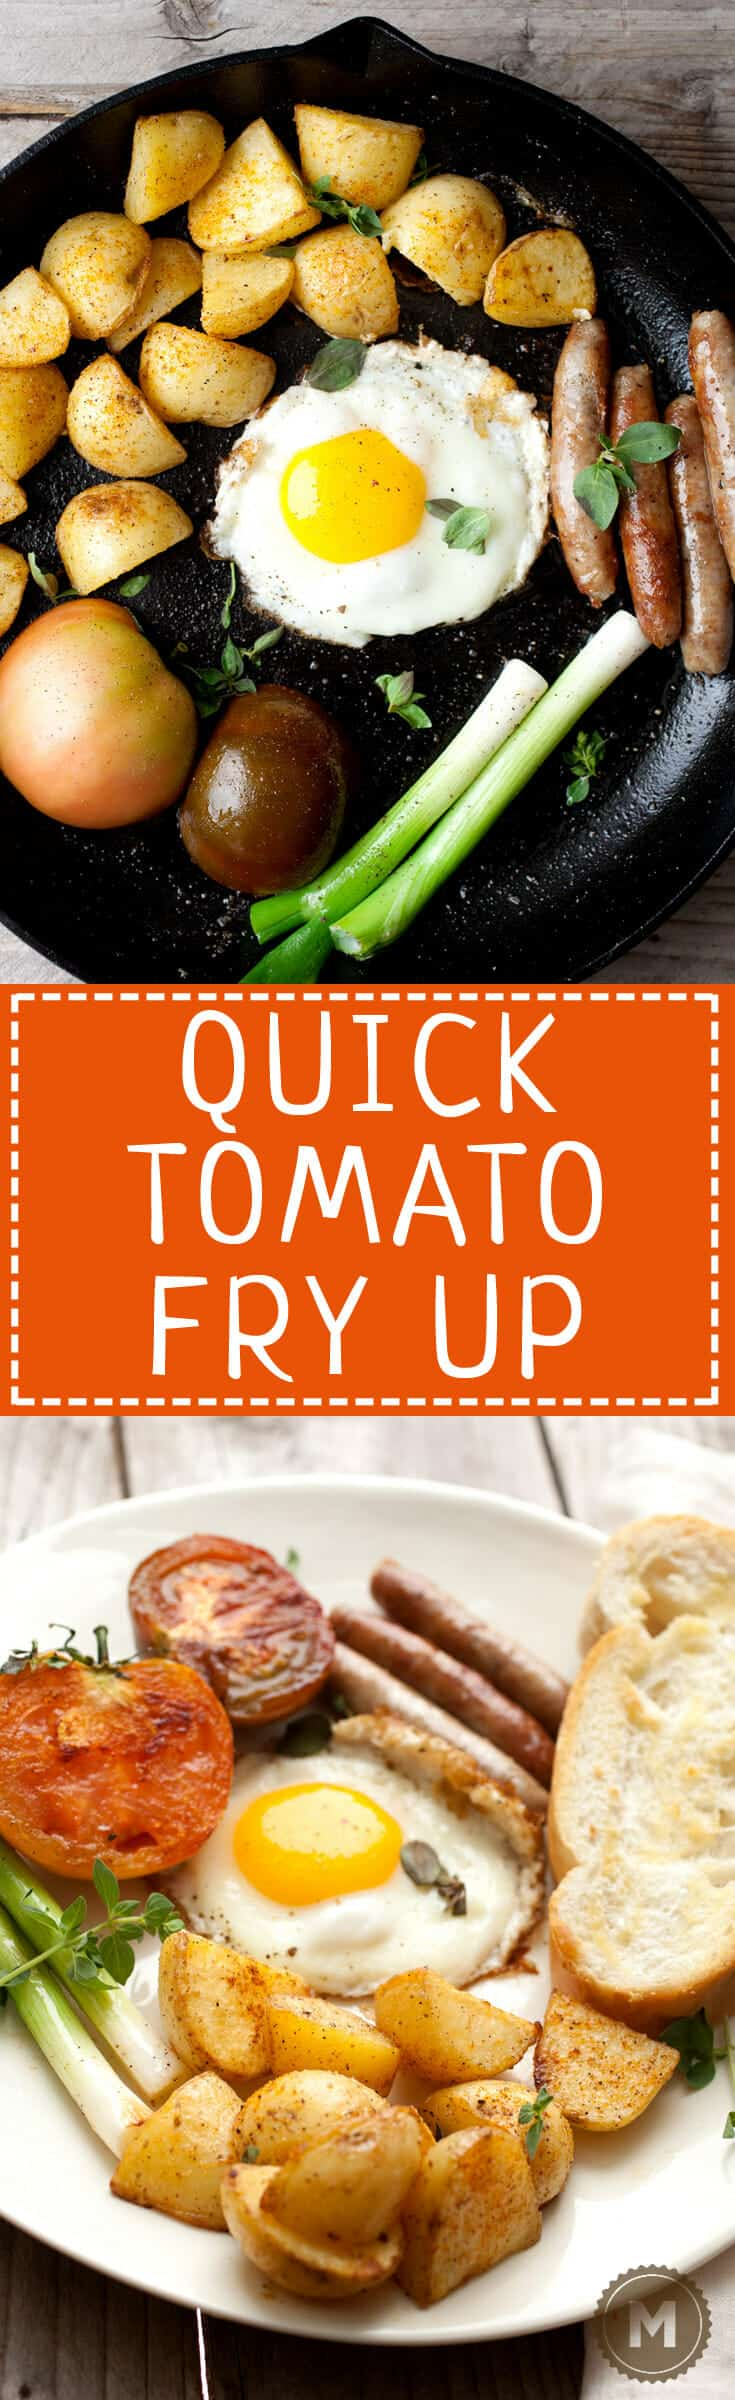 Quick Tomato Fry Up: This is the season when tomatoes are at their best. Make this quick tomato fry up based on the English full breakfast minus a few things and plus a few others! Great way to start the day! | macheesmo.com